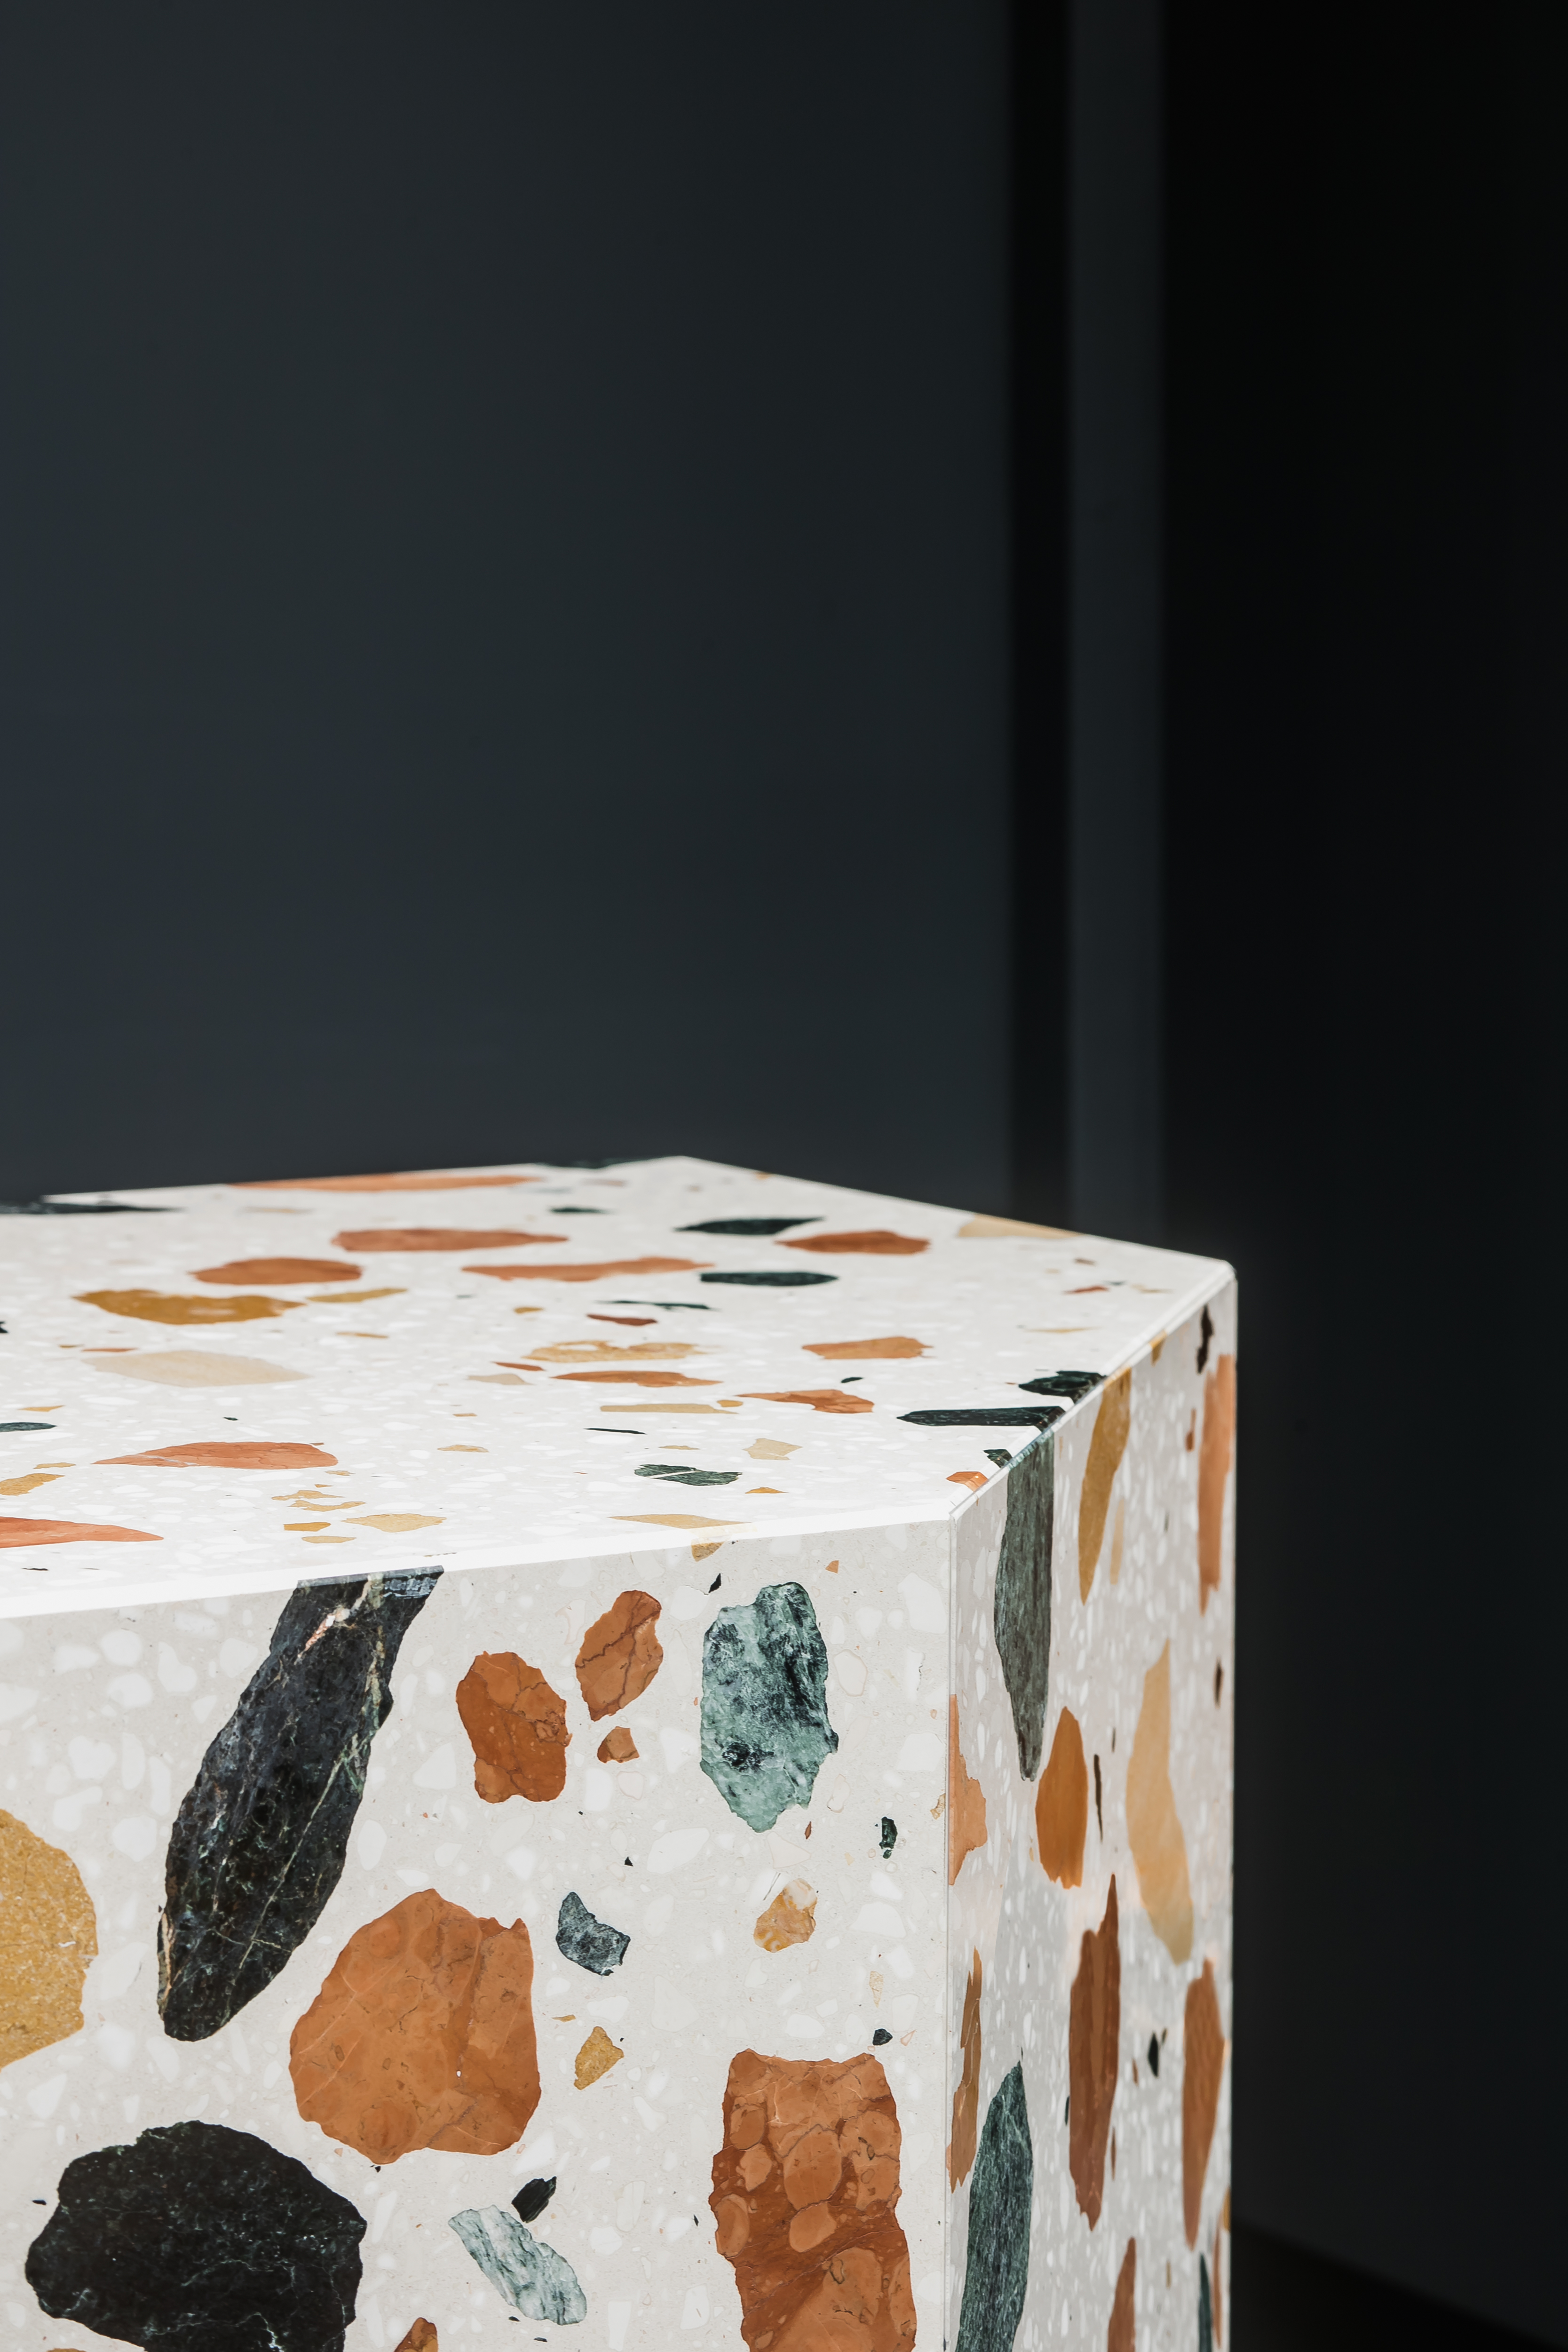 <p>The marmoreal is an engineered marble for architectural surfaces, developed in collaboration with the British designer Max Lamb &amp; Dzek Dzek Dzek.</p>